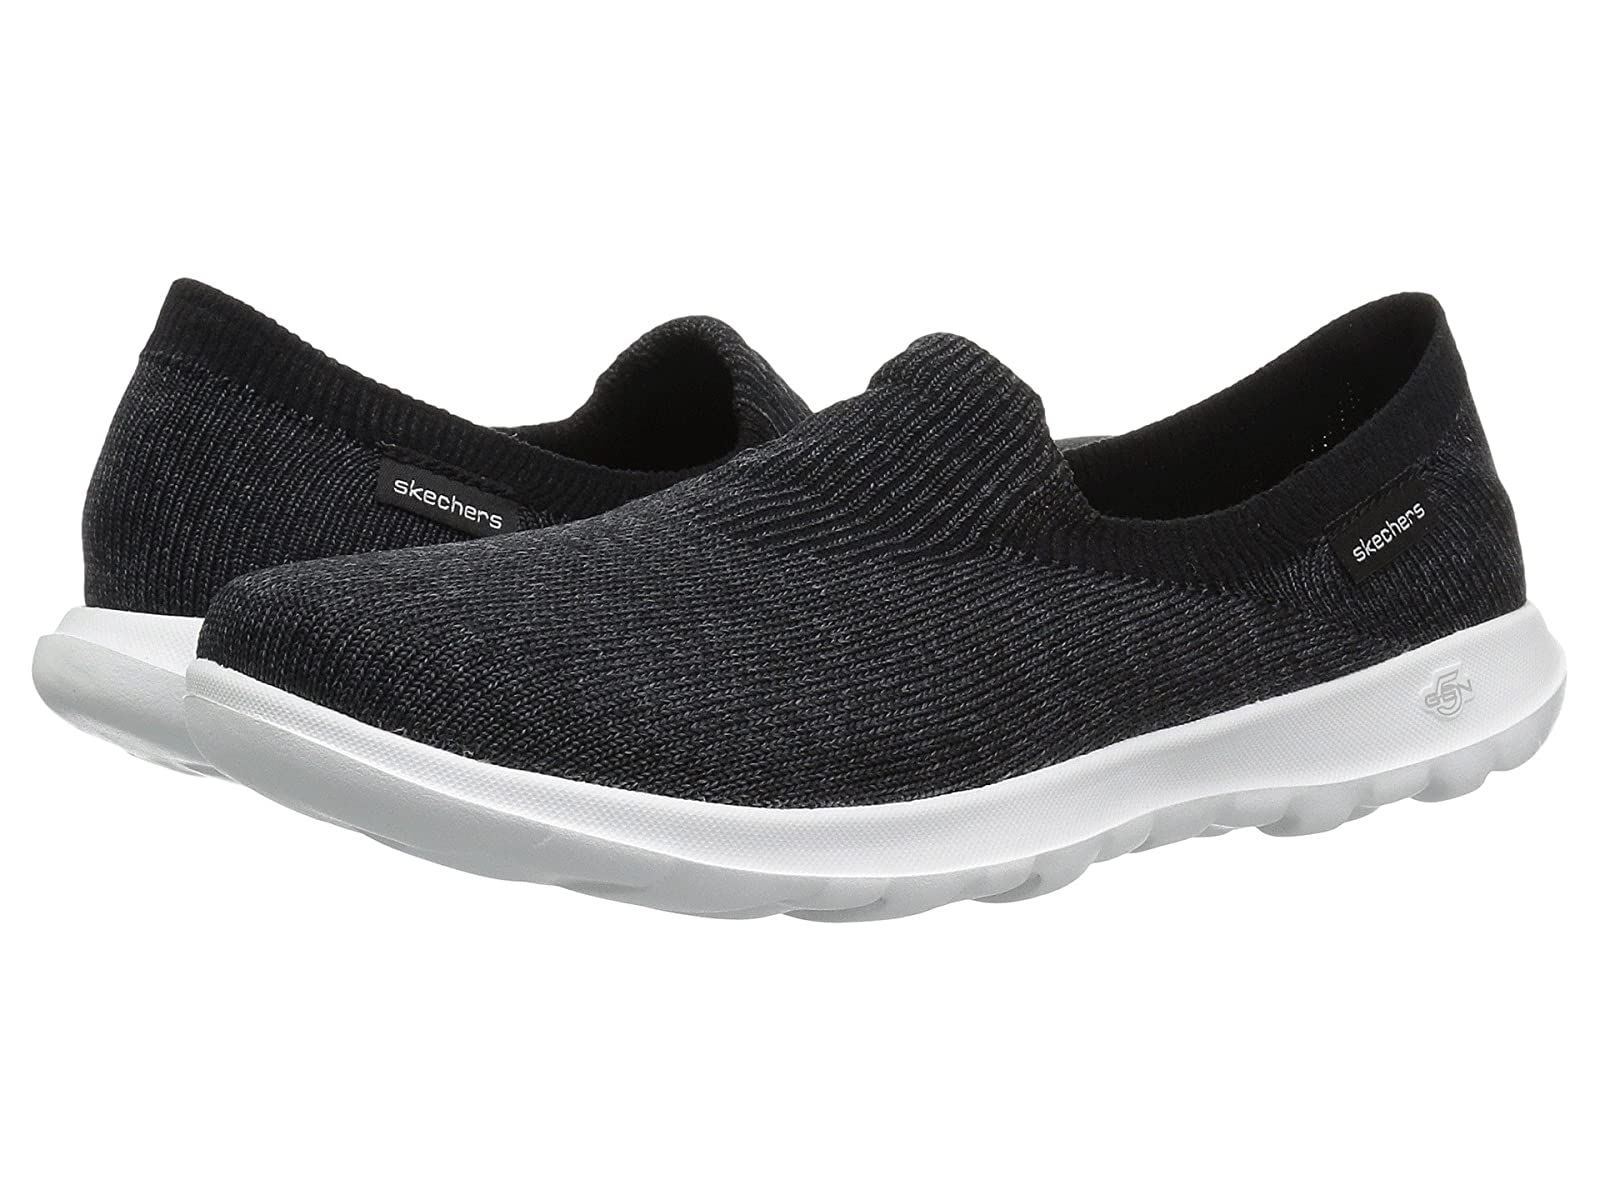 SKECHERS Performance Go Walk Lite EuphoriaAtmospheric grades have affordable shoes